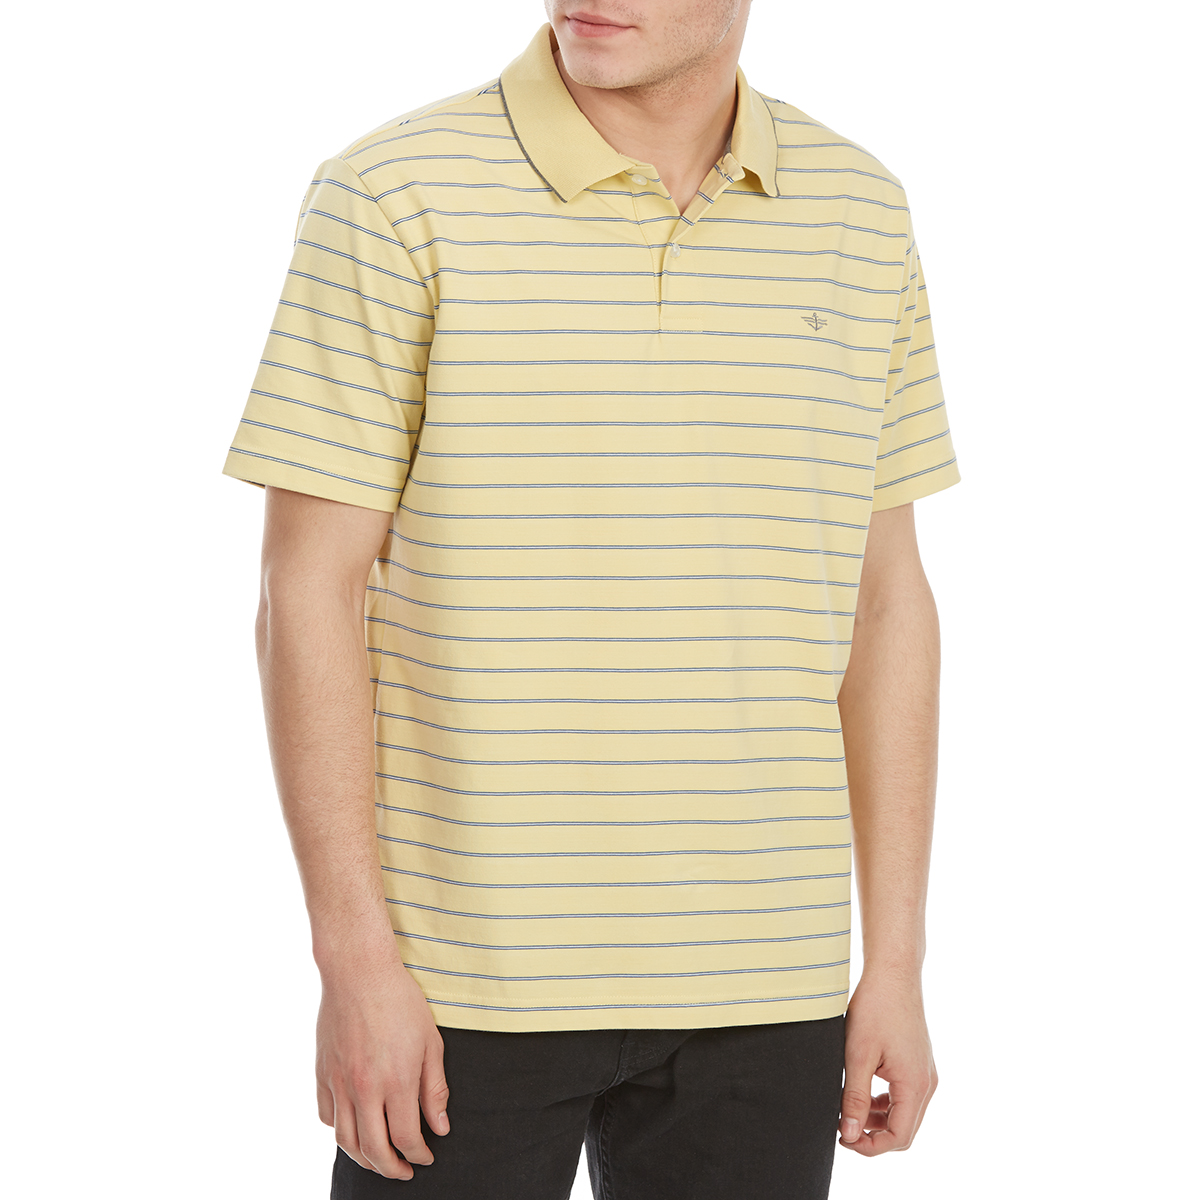 Dockers Men's Performance Stripe Short-Sleeve Polo Shirt - Yellow, XL